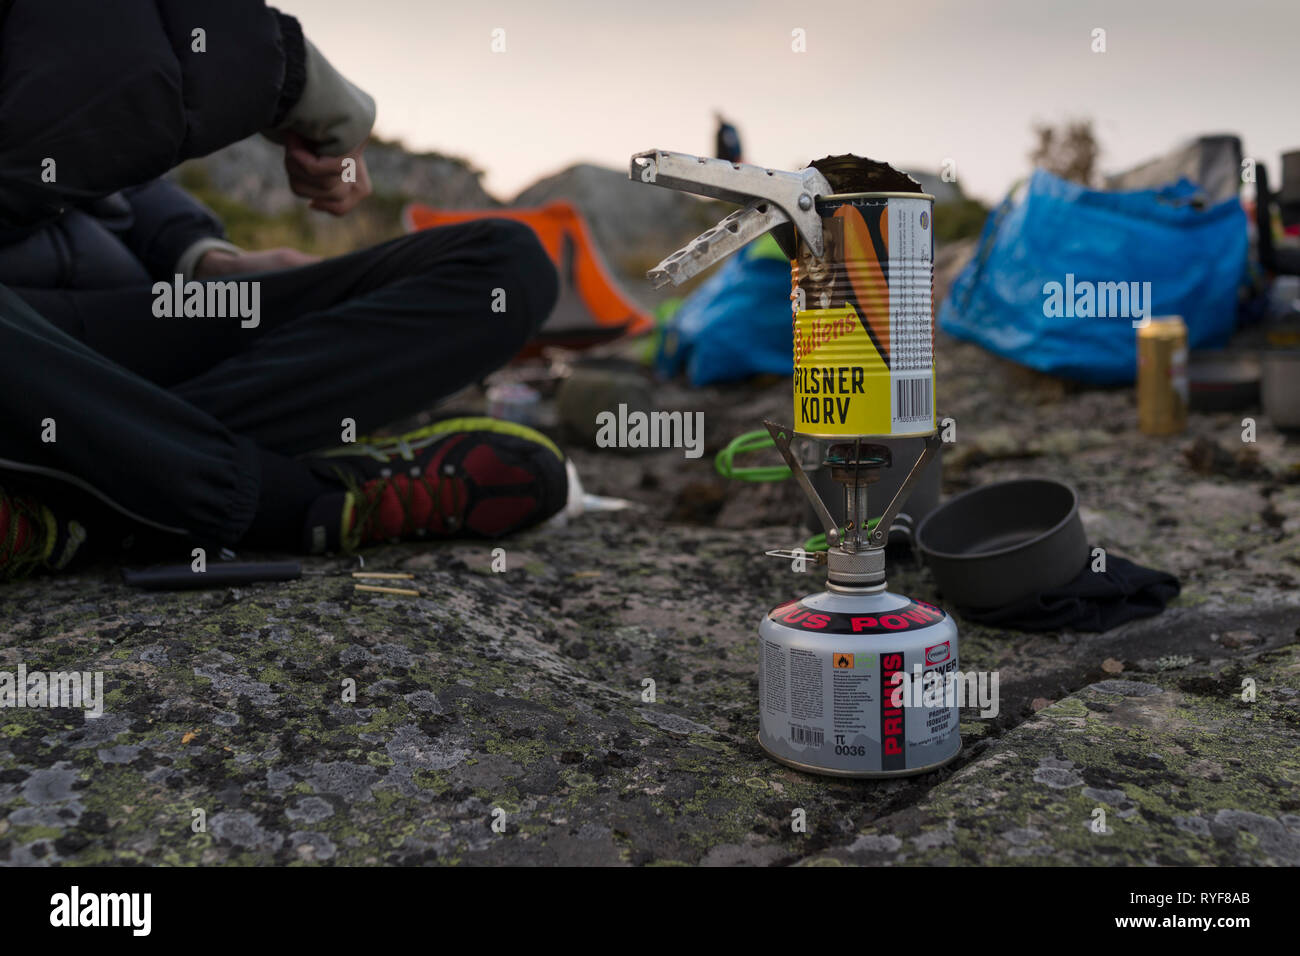 Cooking a can of sausage on a camping stove. Bullens pilsnerkorv - Stock Image